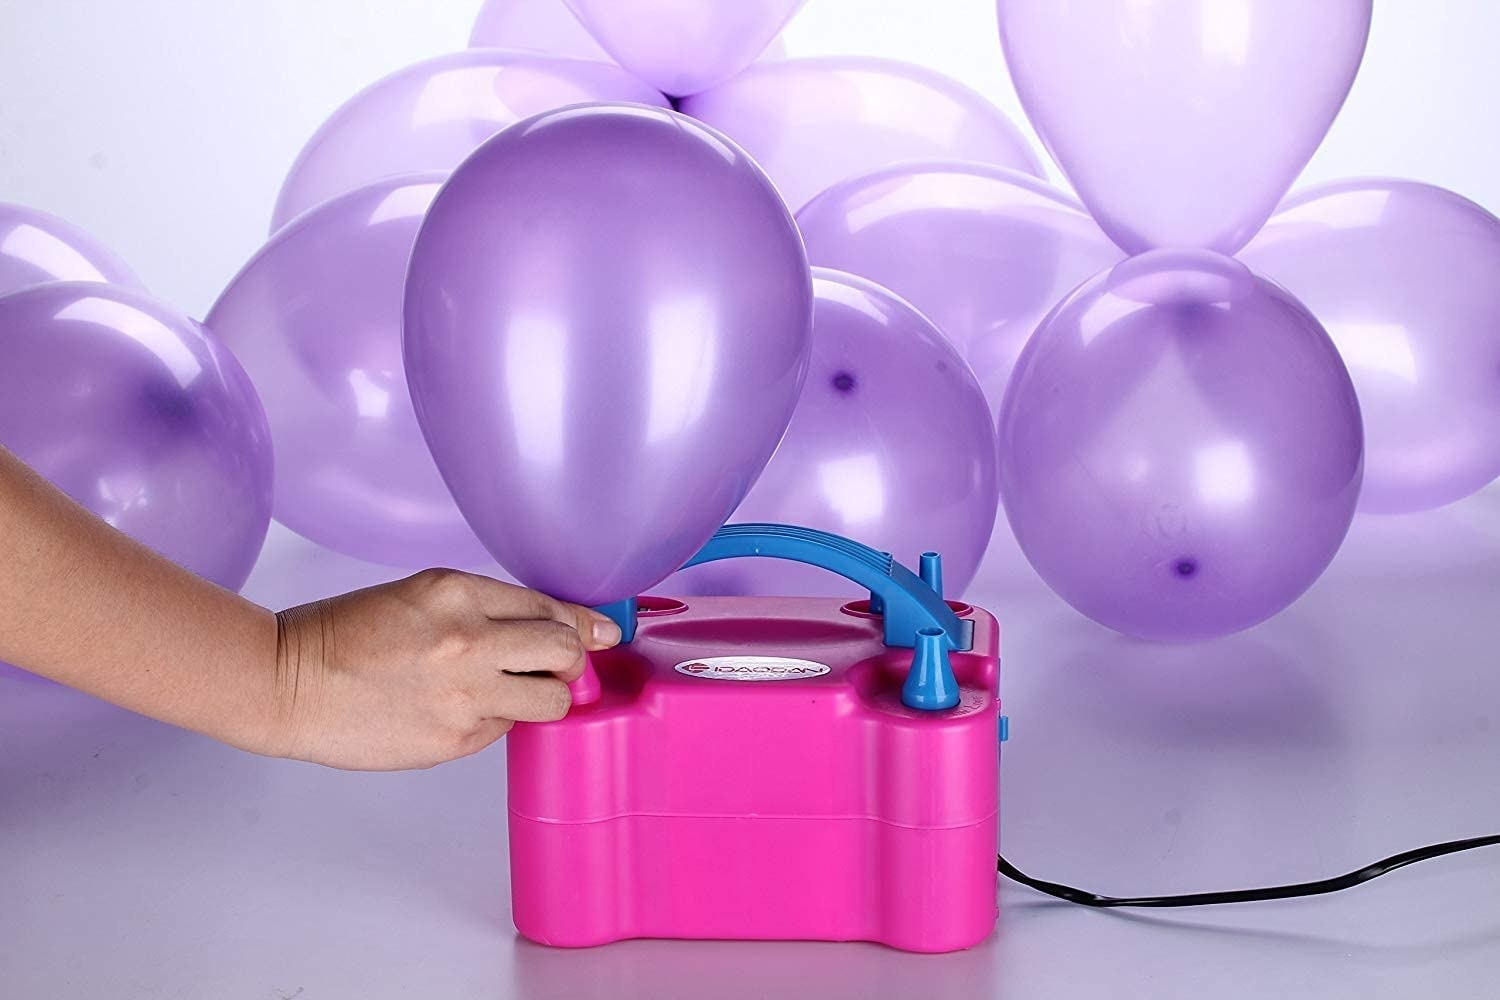 A person using the machine to blow up a metallic balloon